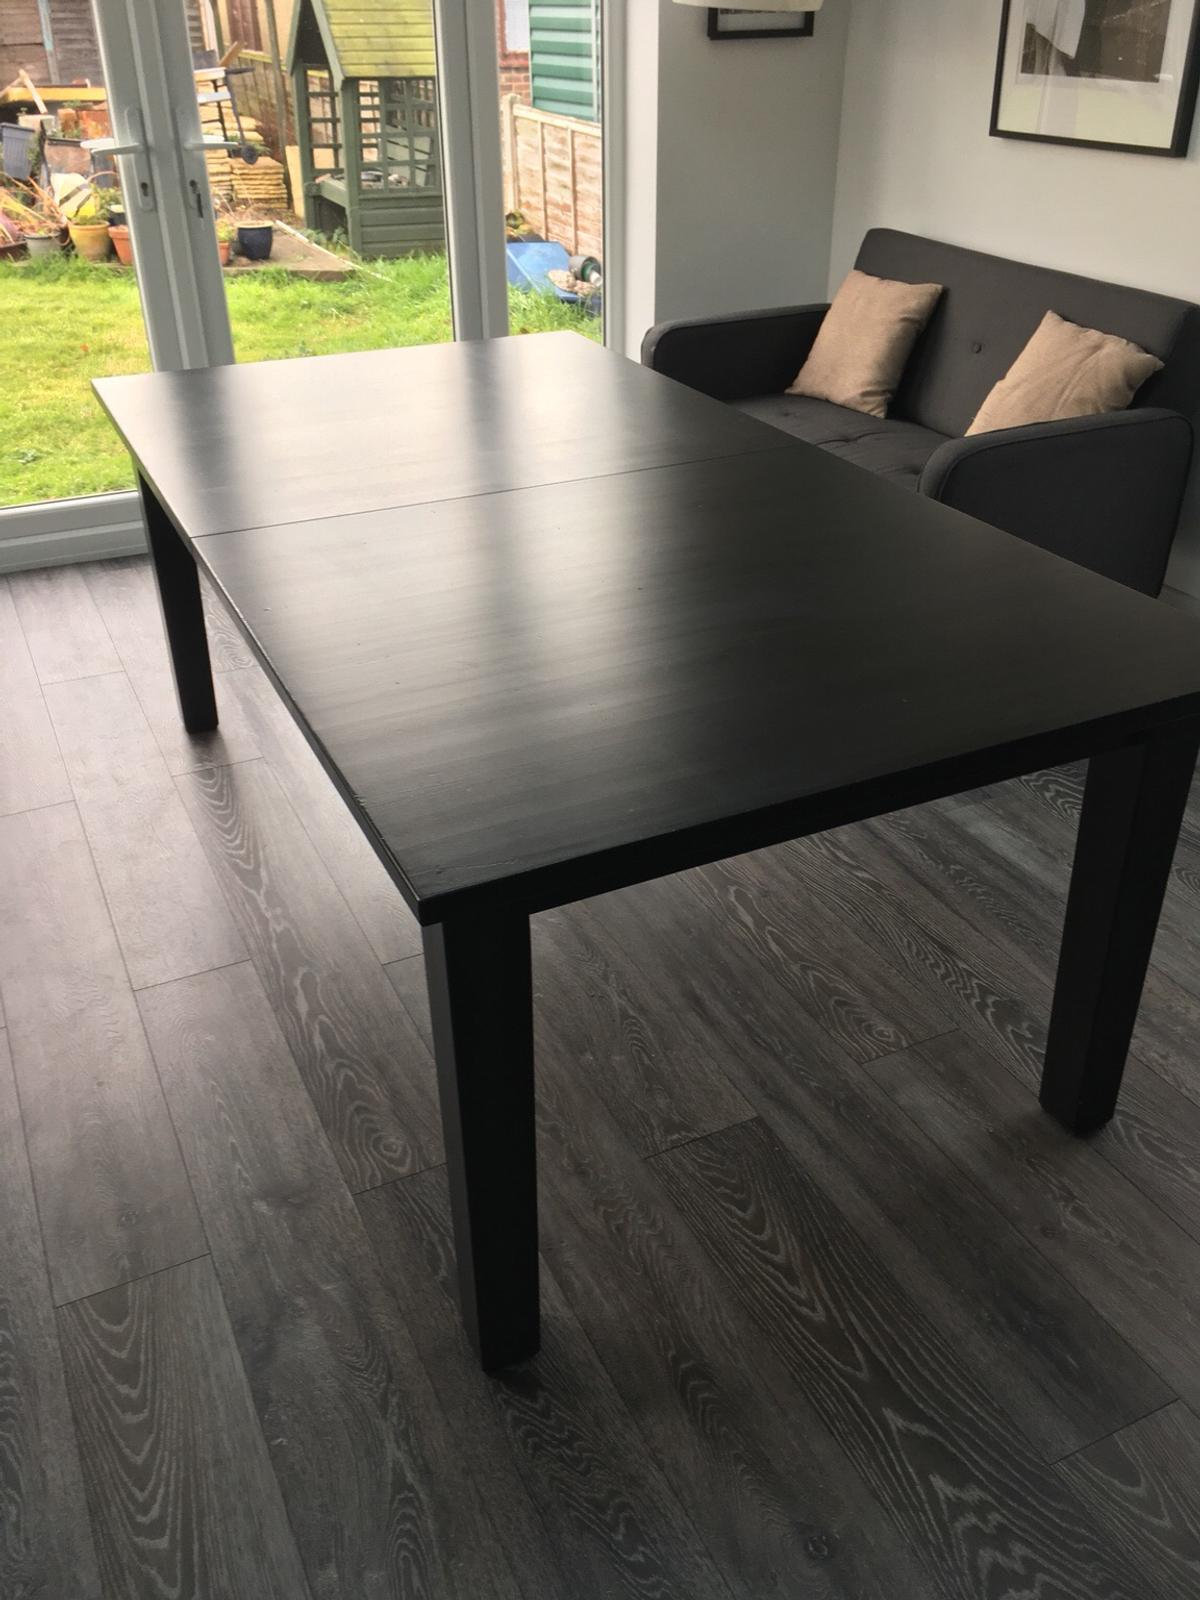 Ikea Stornas Extendable Dining Table In Tn24 Willesborough For 100 00 For Sale Shpock